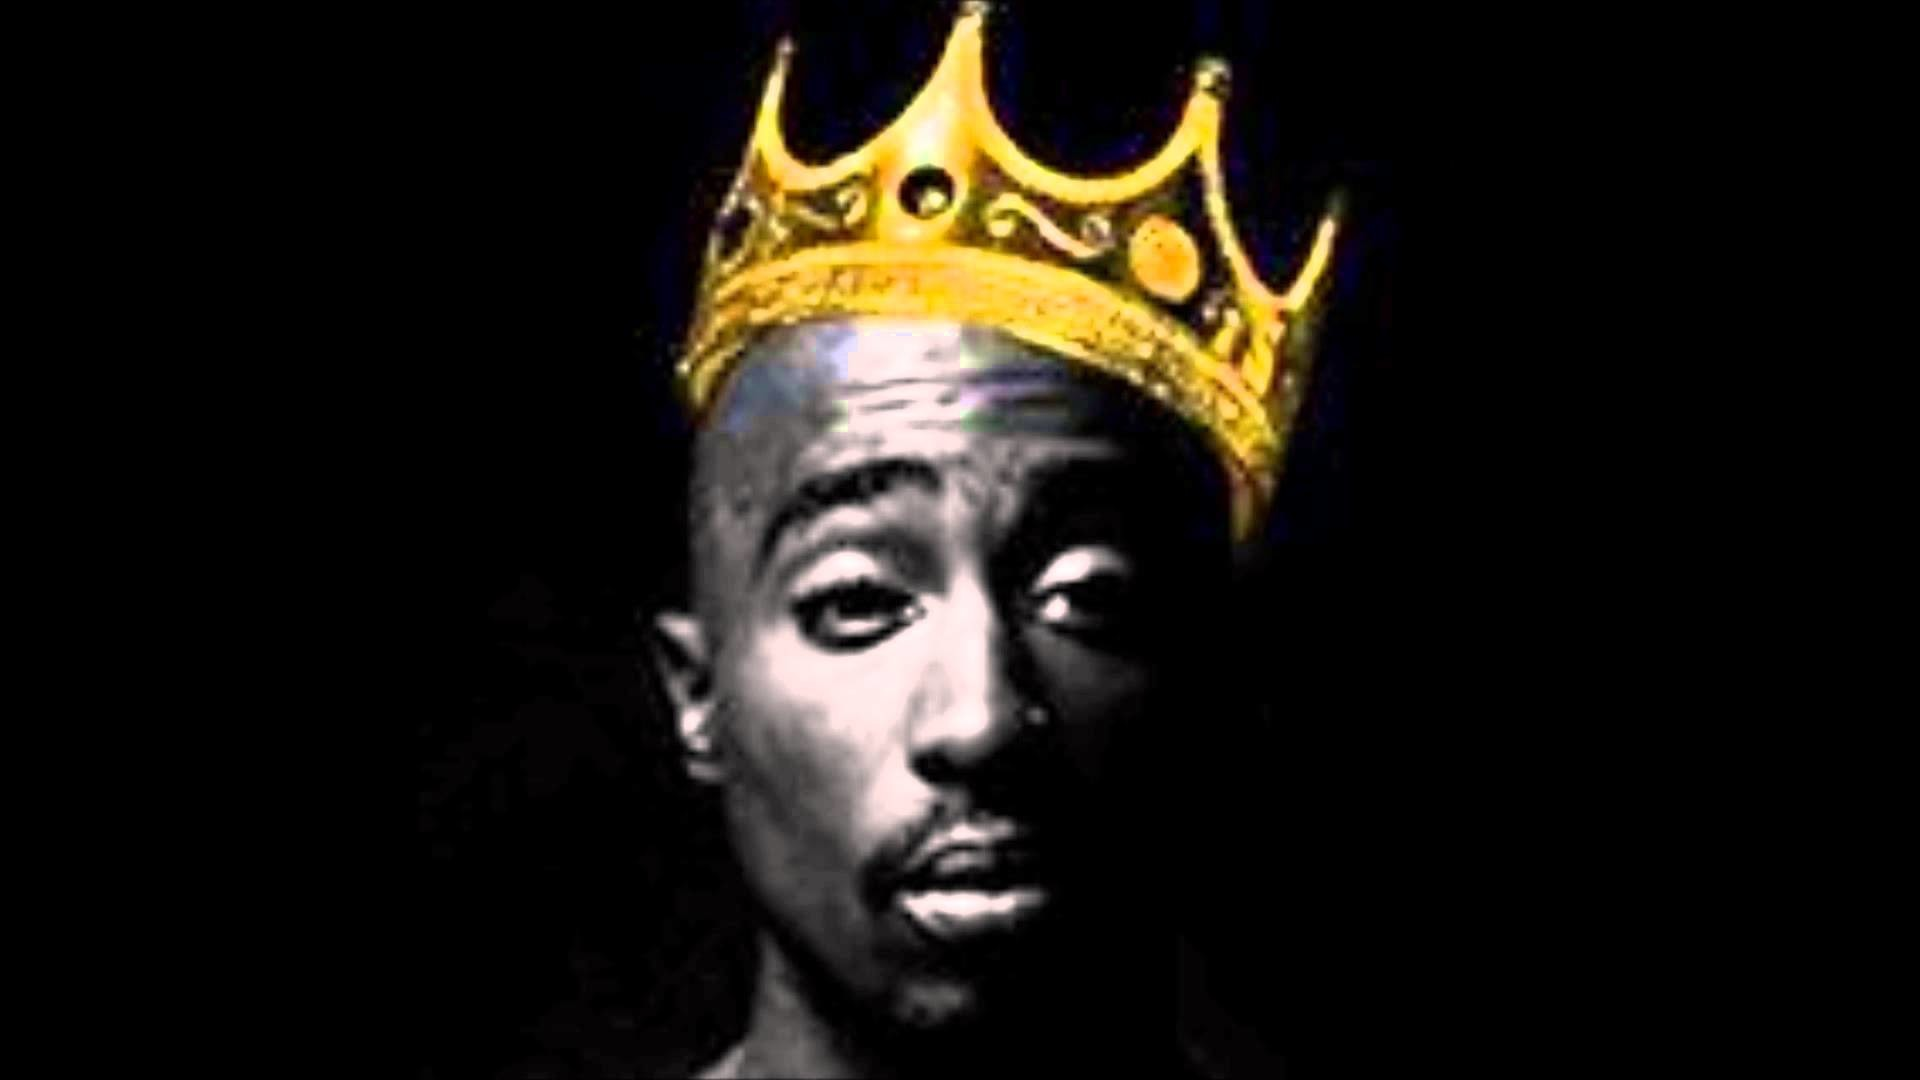 Supreme Girl With Crown Wallpaper Drawing Tupac Wallpapers 73 Images